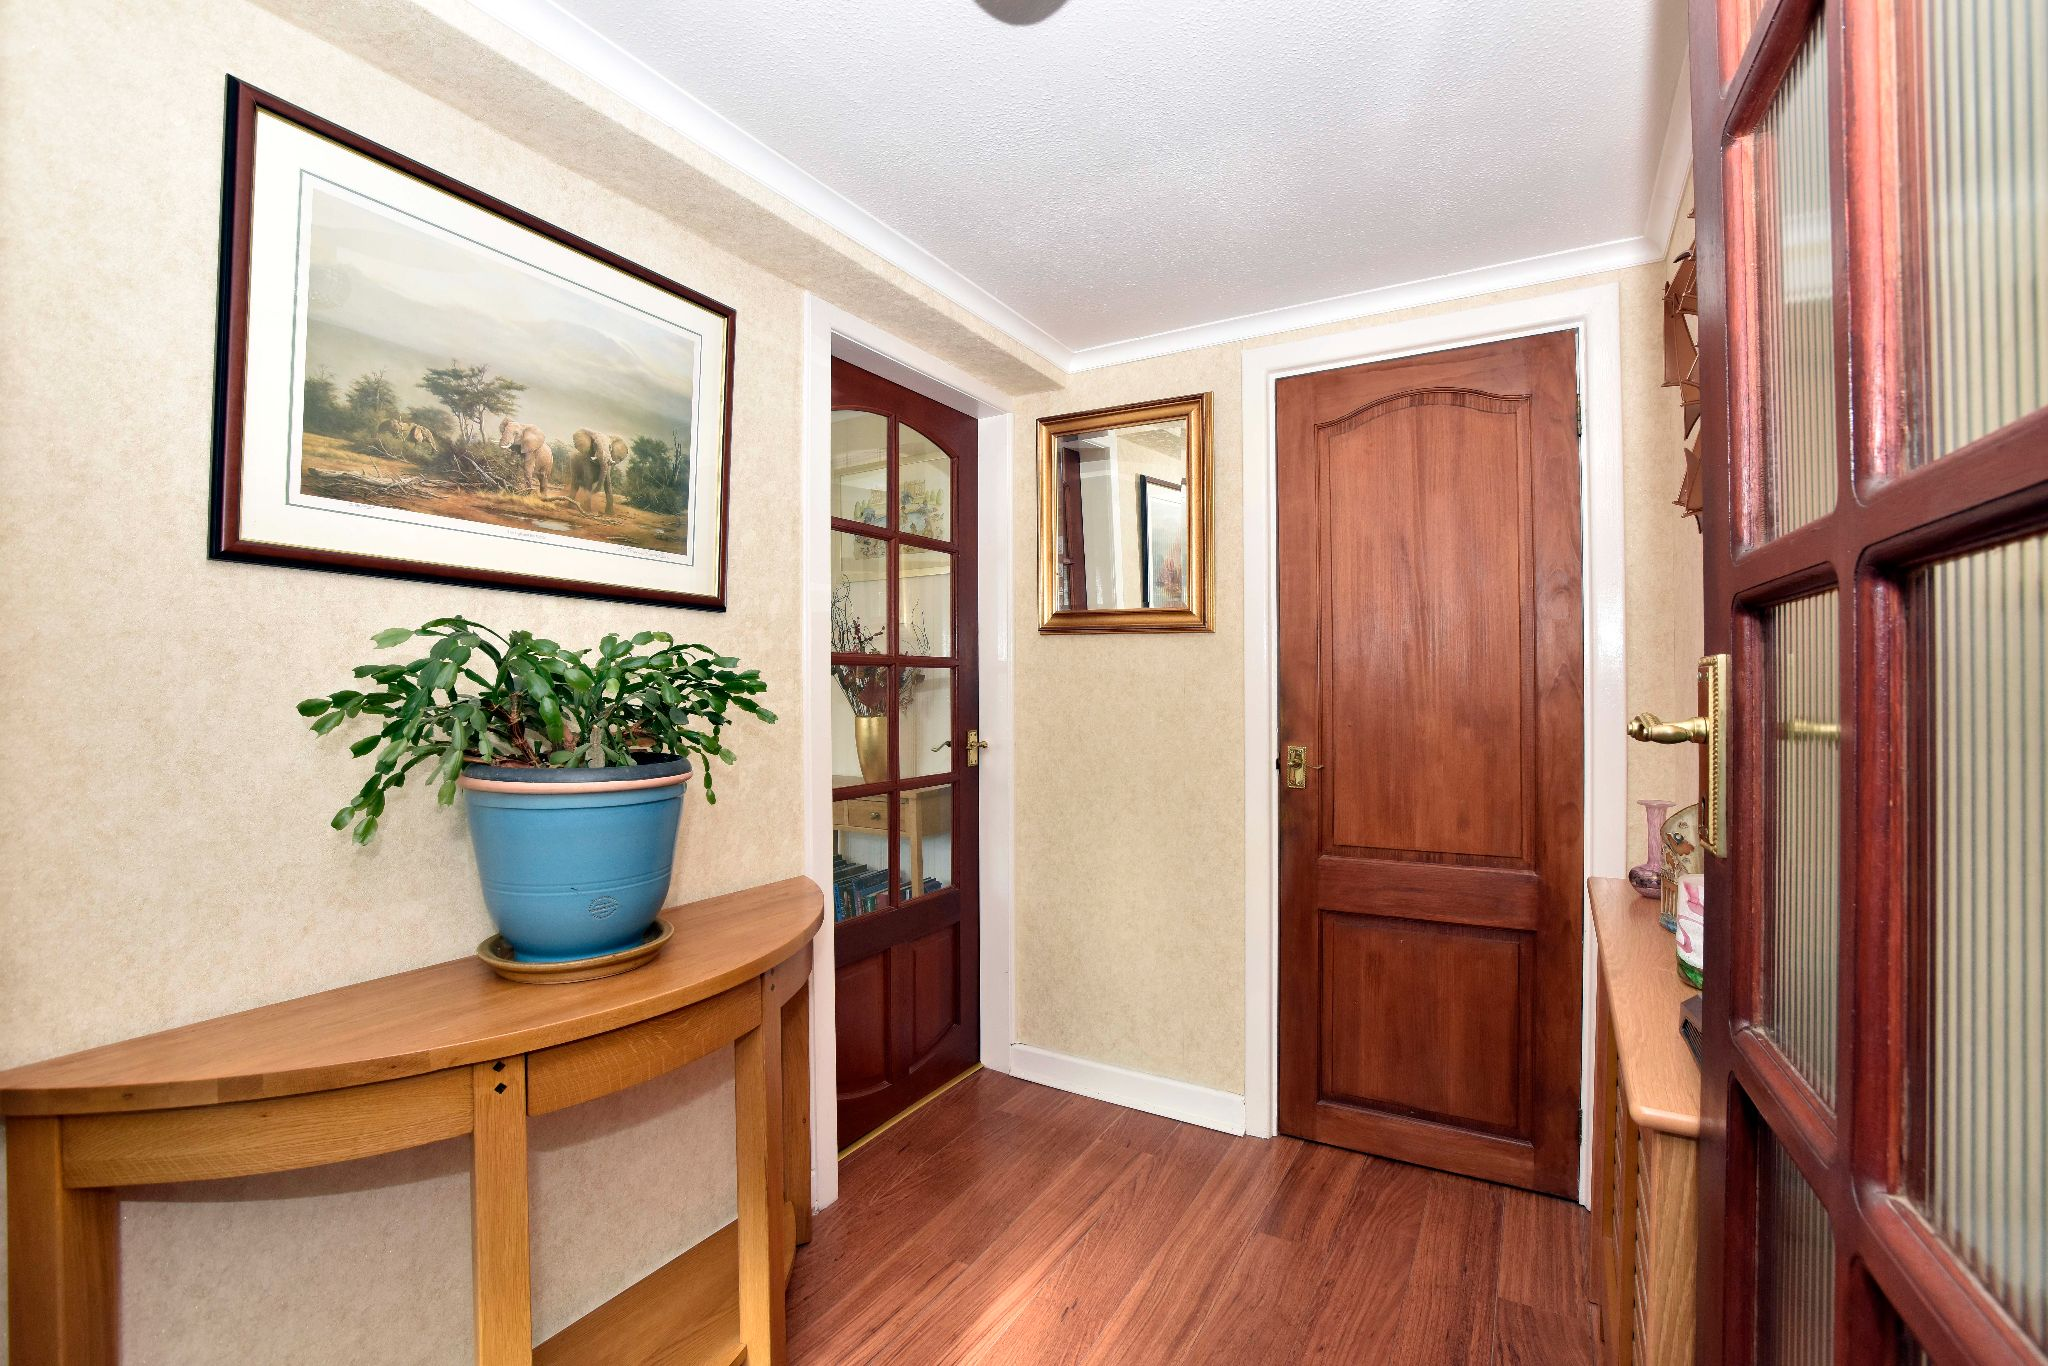 3 Bedroom Link Detached House For Sale - Photograph 5